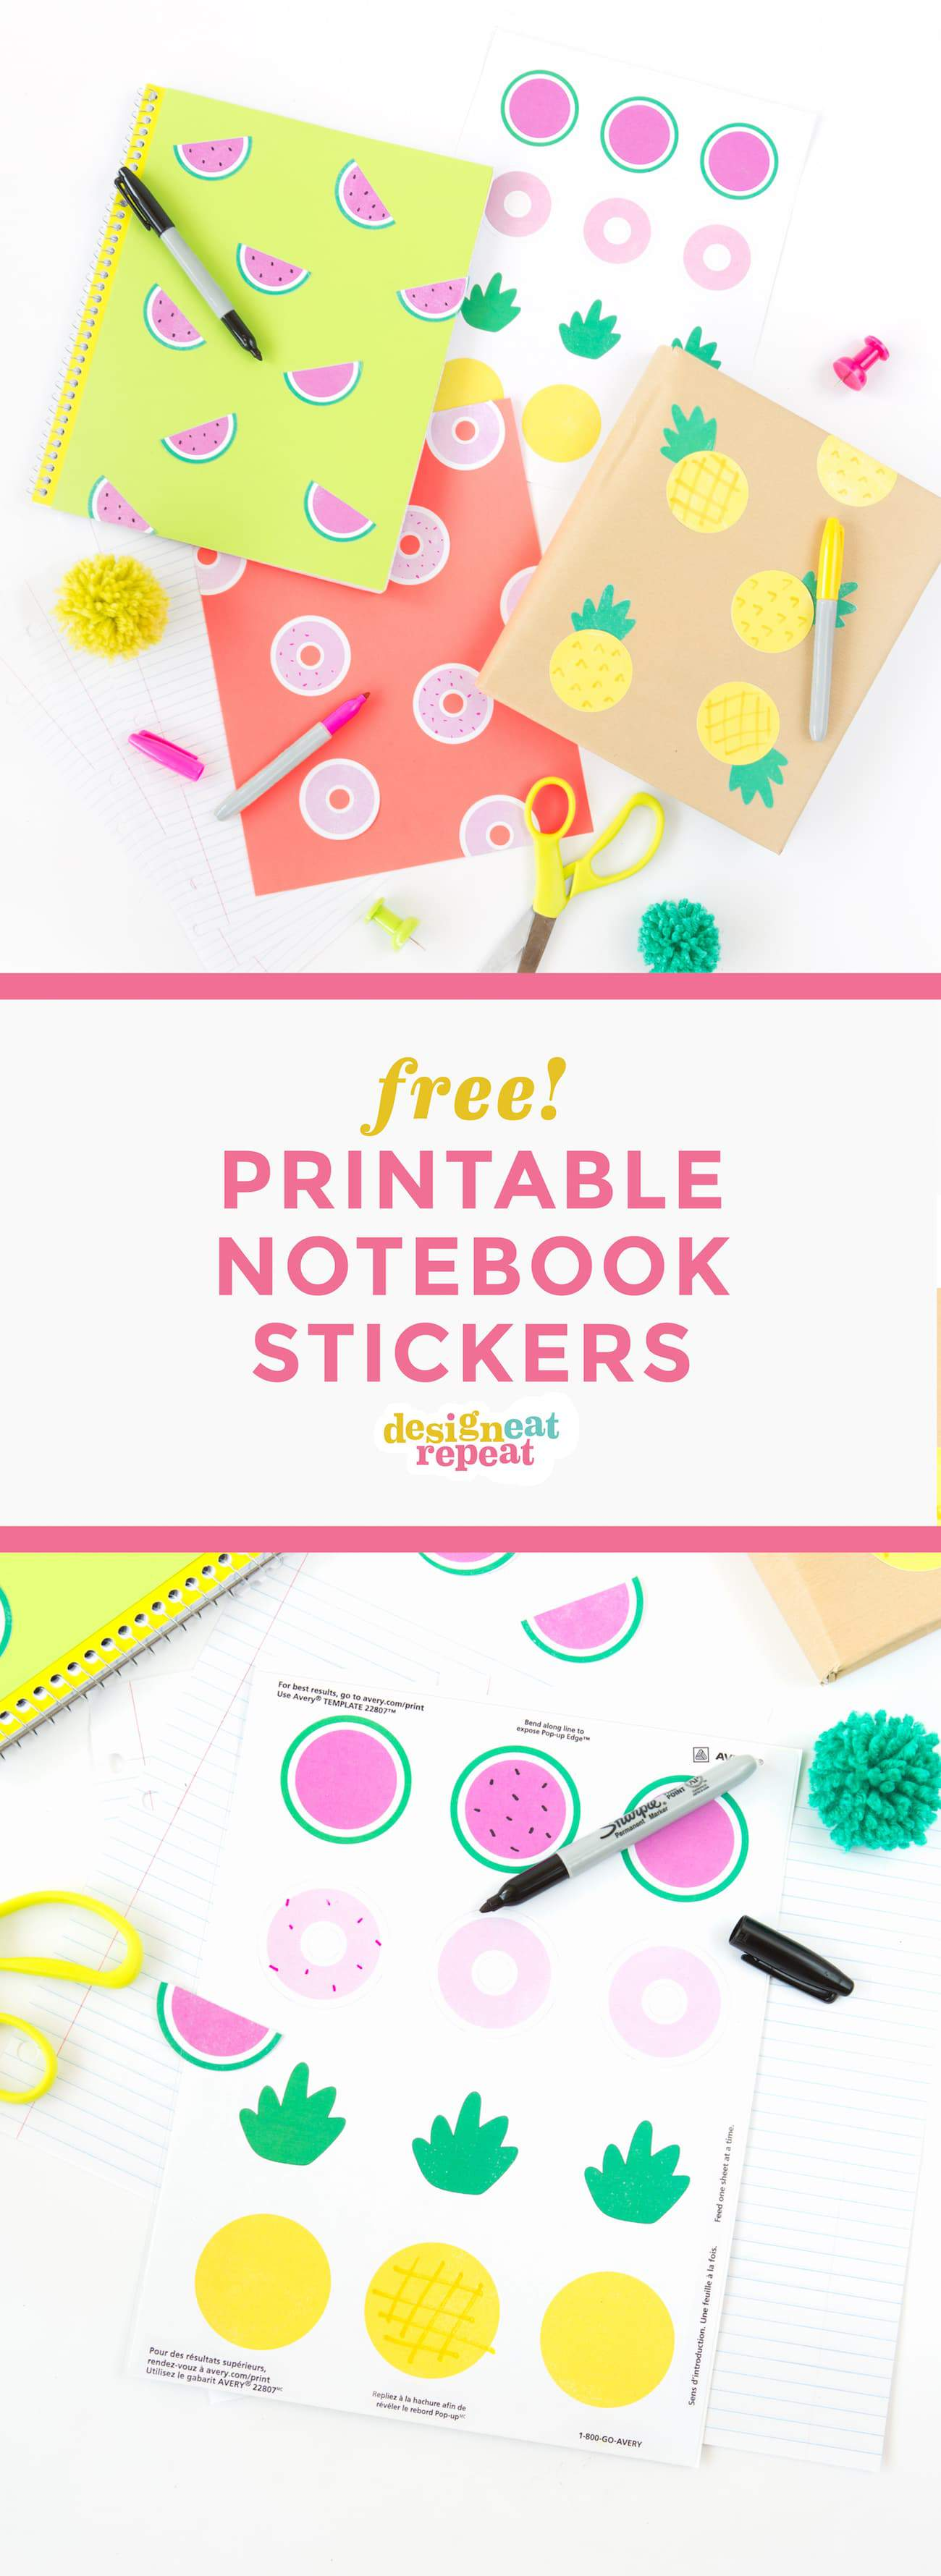 cute printable notebook stickers - design eat repeat